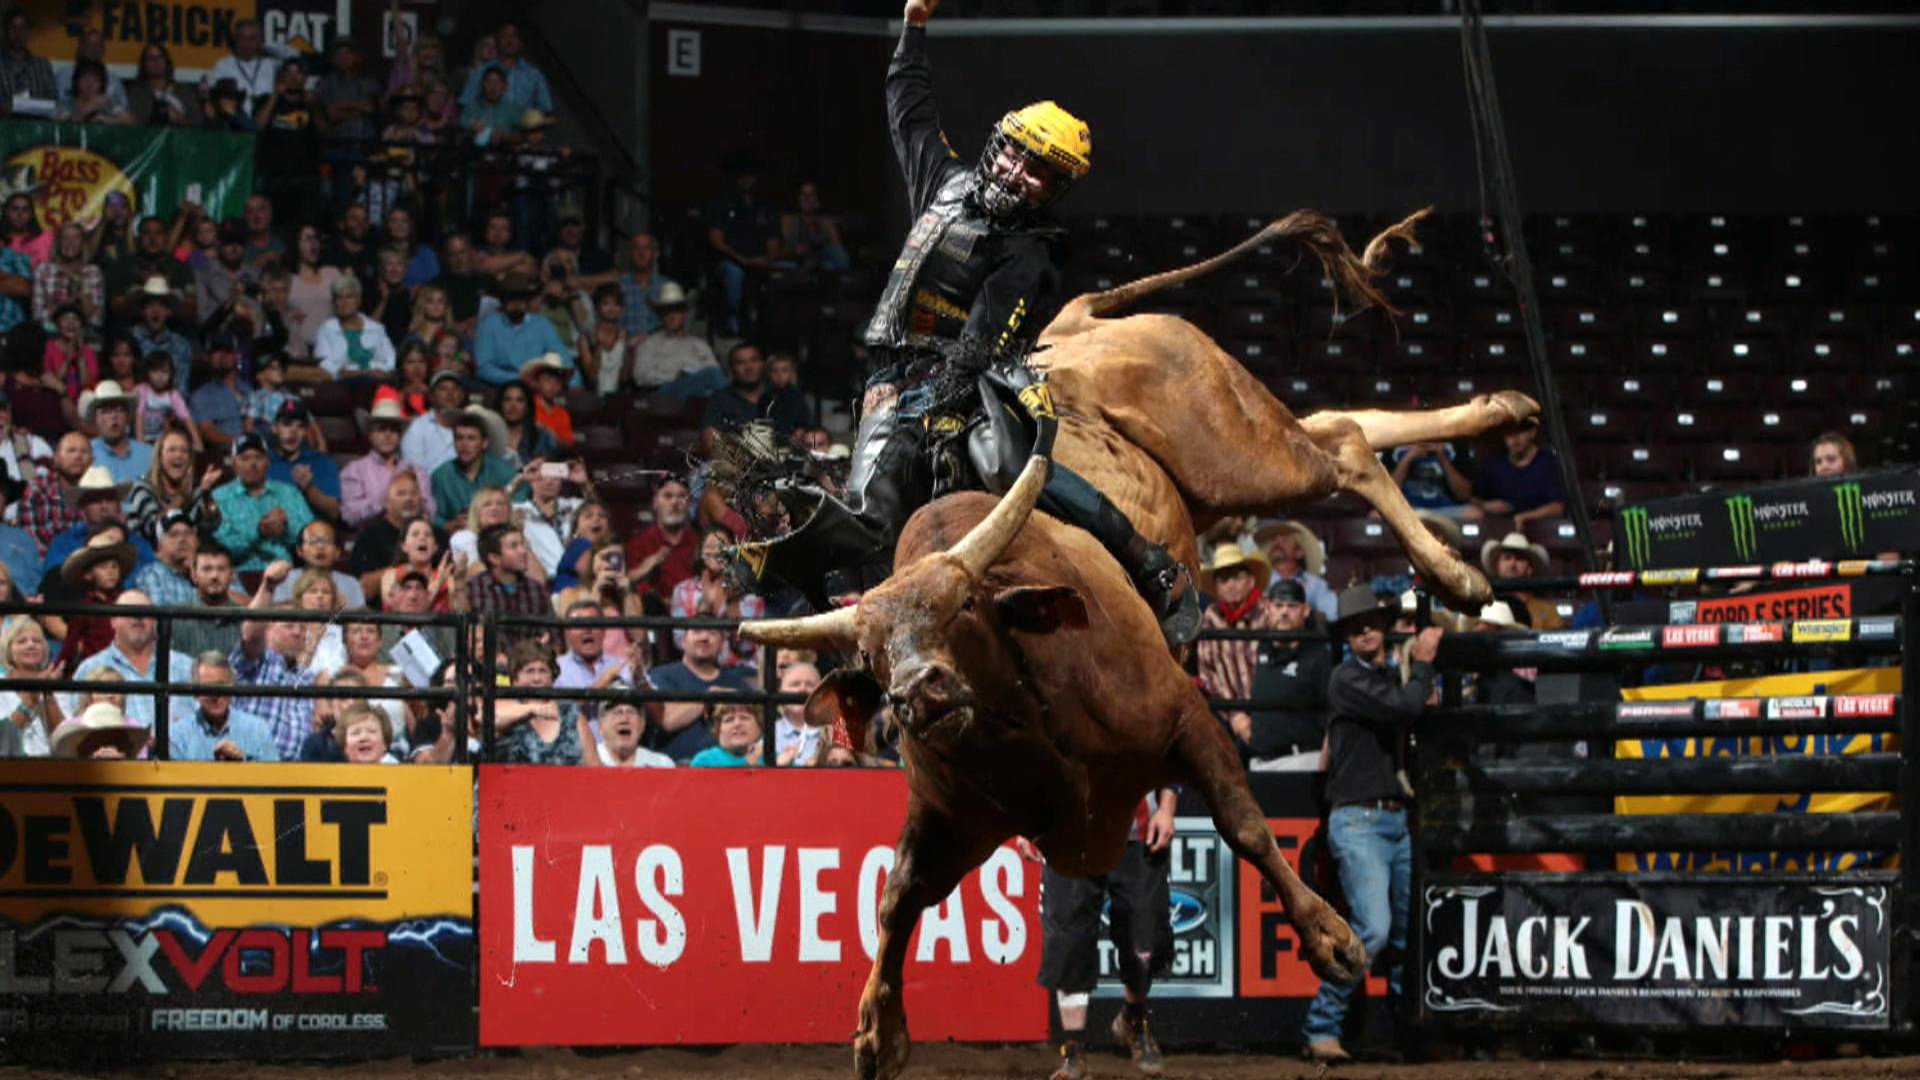 Res: 1920x1080, Watch CBSN: Star bull rider aims for comeback - Full show on CBS All Access